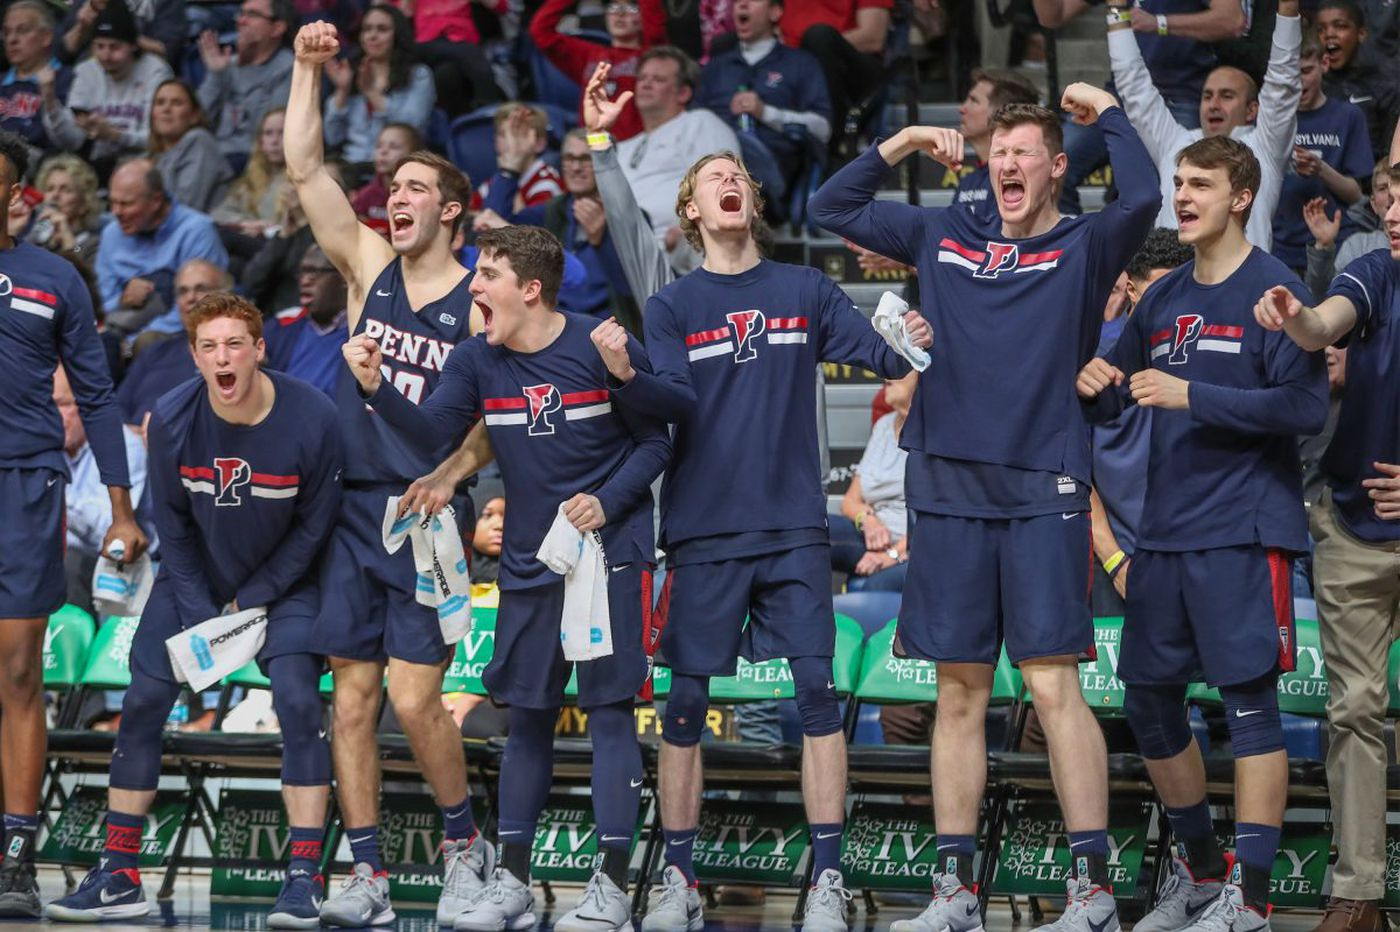 Penn ends 11-year NCAA tournament drought with 68-65 win over Harvard at the Palestra